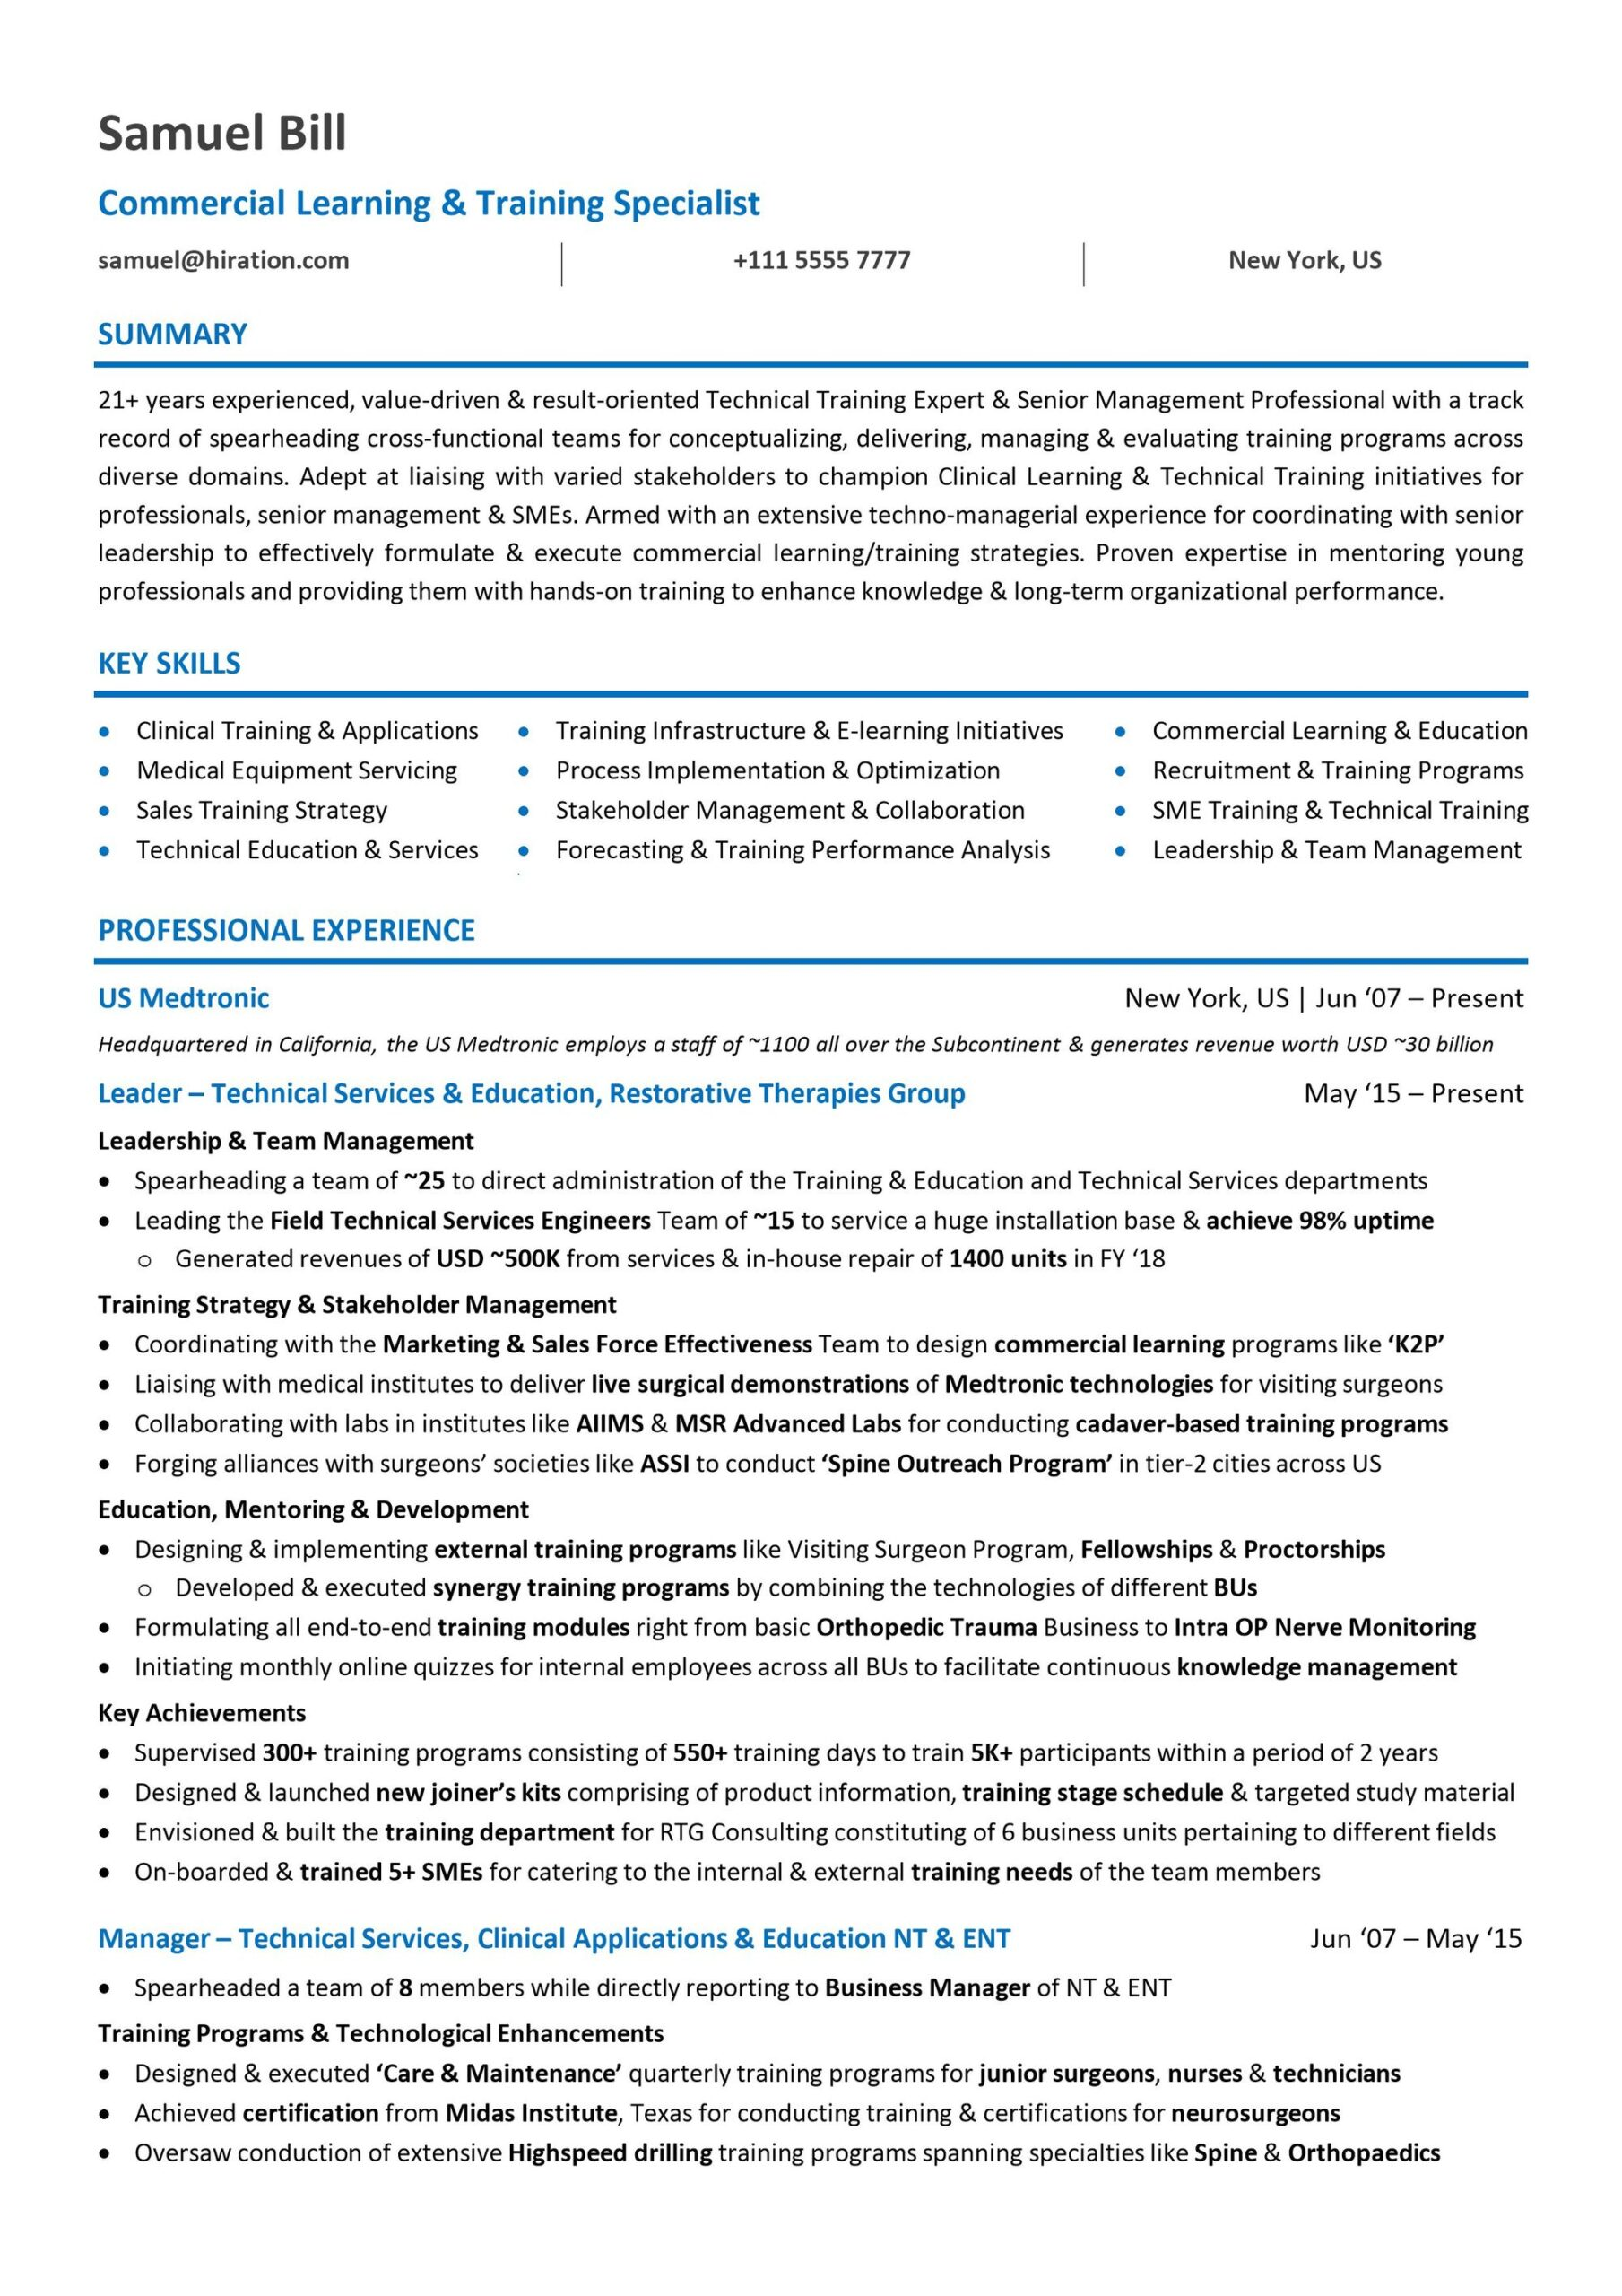 career change resume guide to for summary example cleaning skills lille nantes cnc Resume Career Change Resume Summary Example